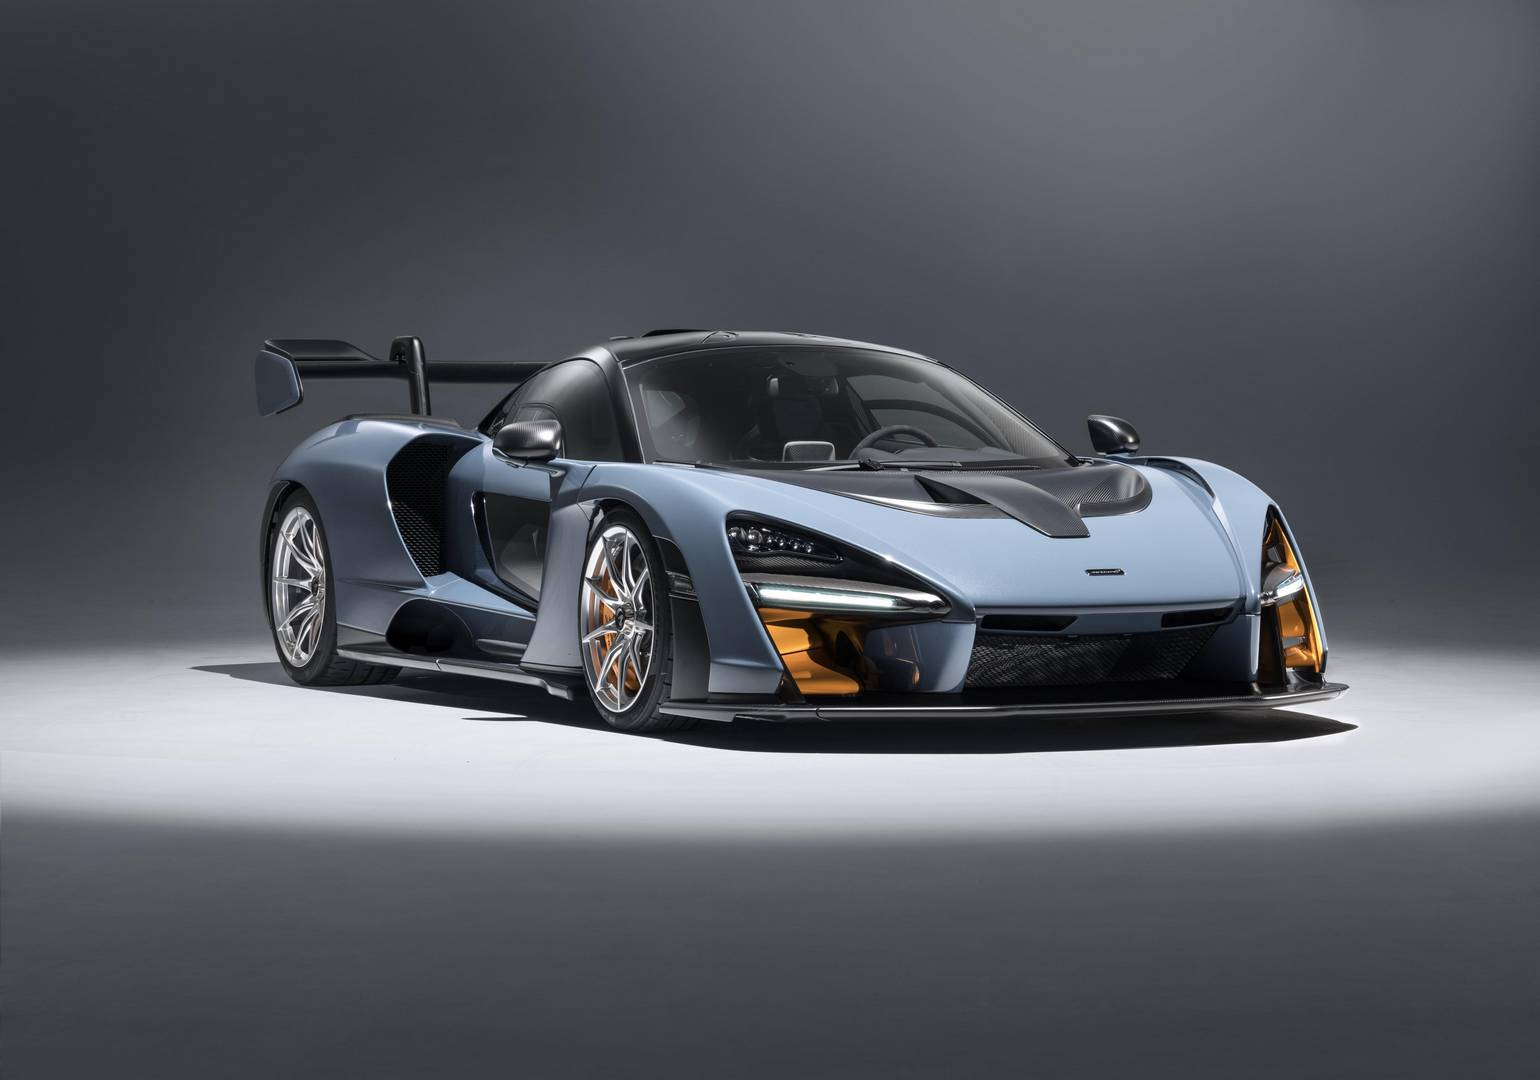 McLaren Senna: New Stats Revealed Ahead of Geneva Debut